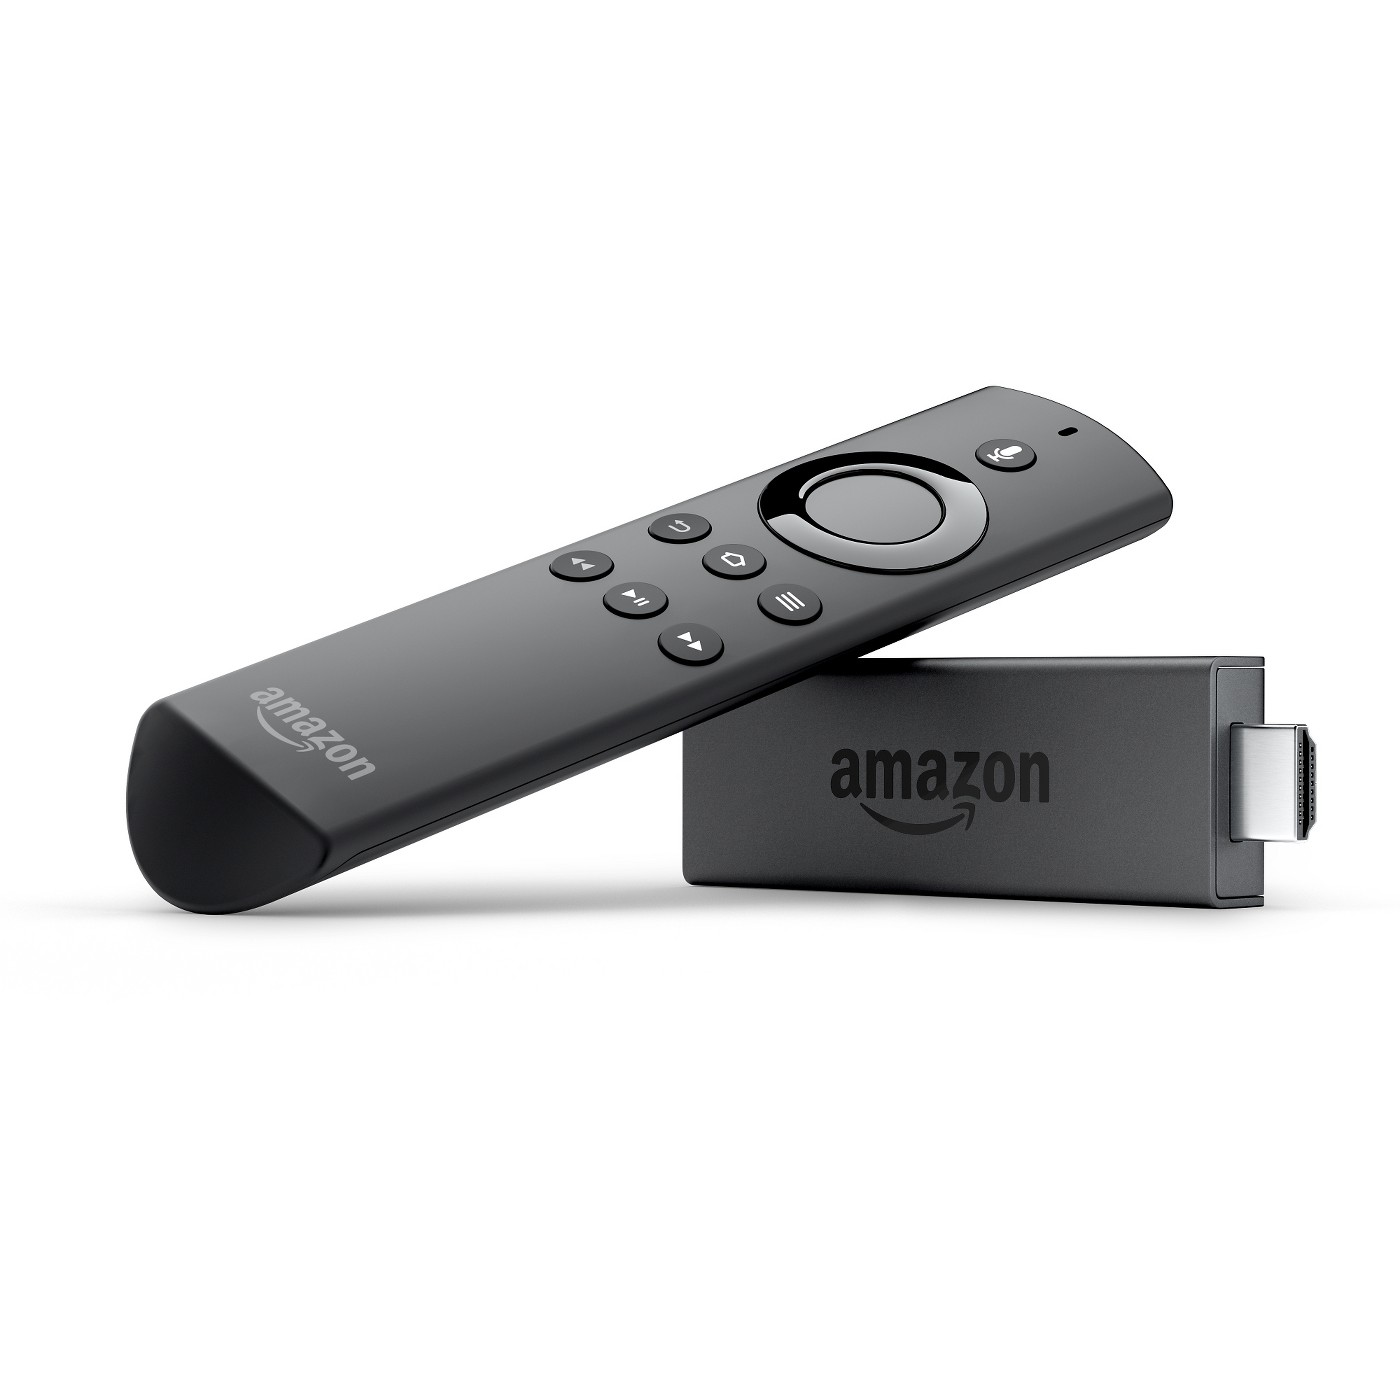 Save 15% on Amazon Fire TV Stick with Alexa Voice Remote